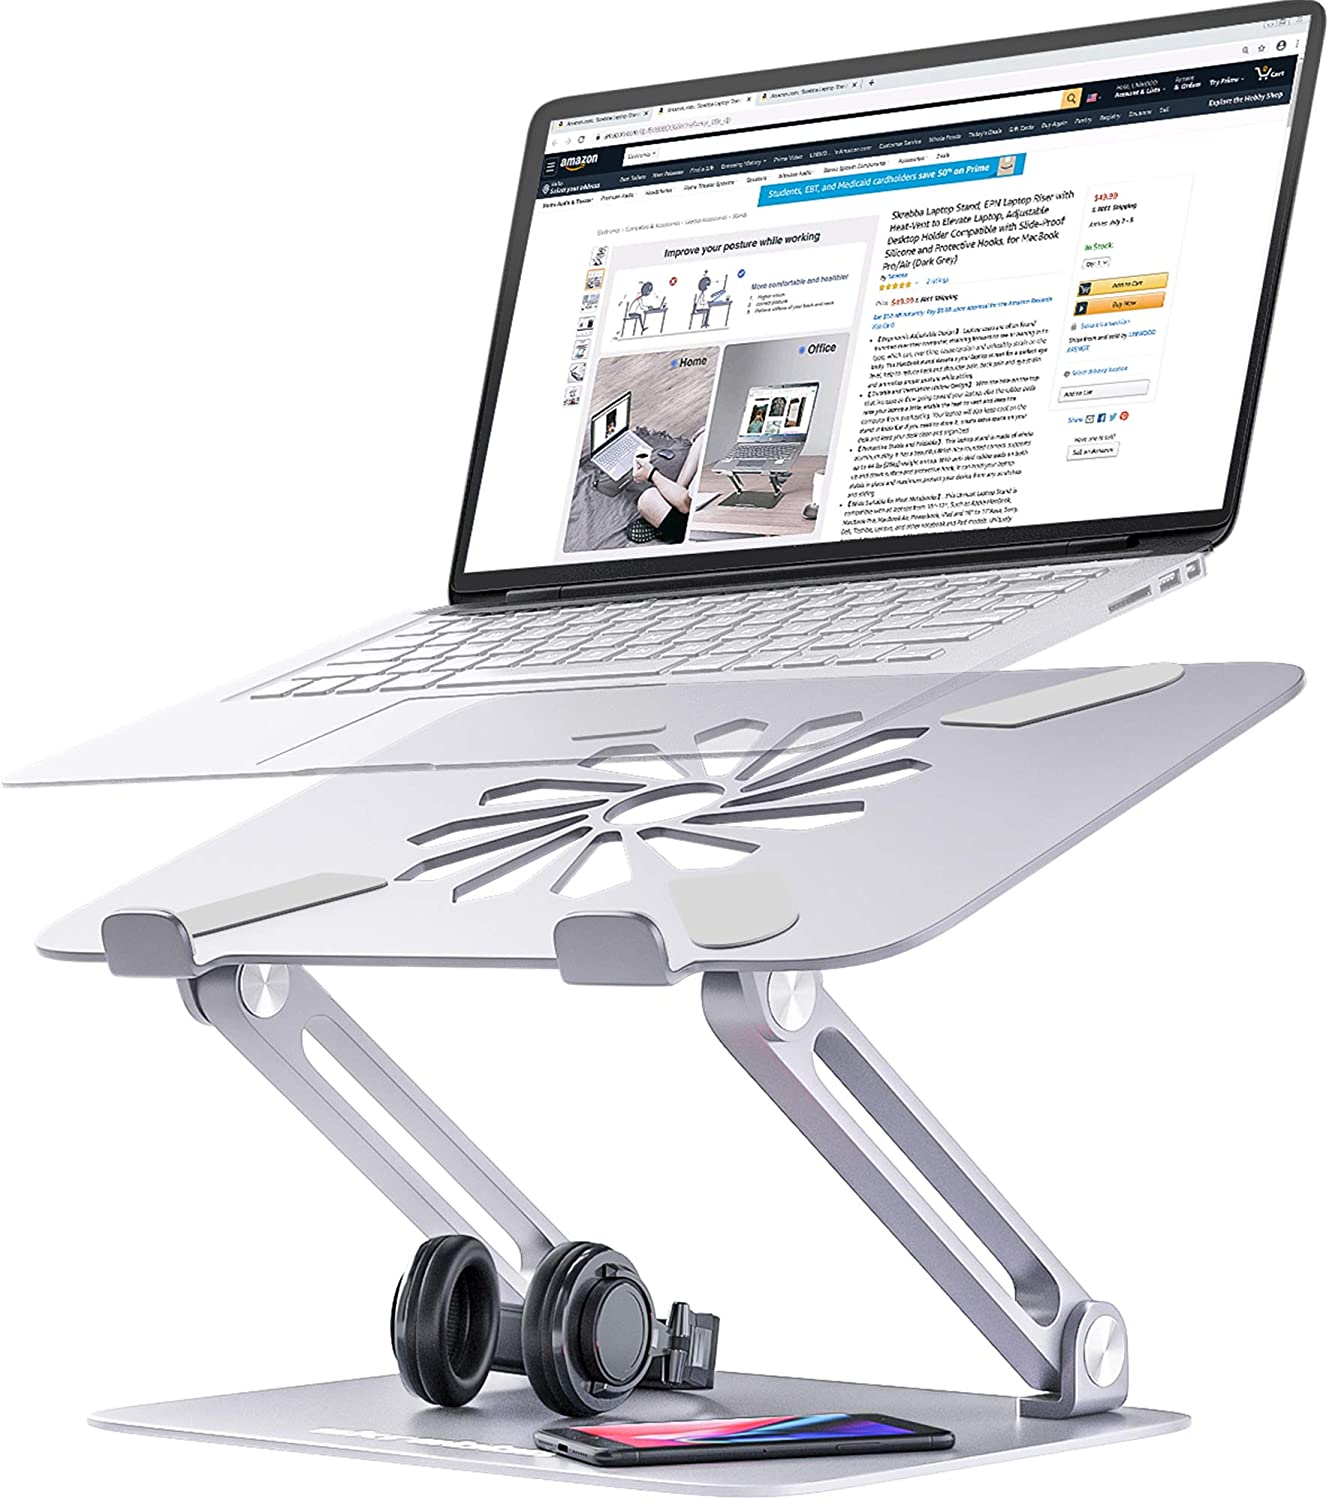 EPN Laptop Riser with Heat-Vent to Elevate Laptop Adjustable Height Laptop Stand Holder with Slide-Proof Silicone and Protective Hooks Dark Grey for MacBook Pro//Air Skrebba Laptop Stand